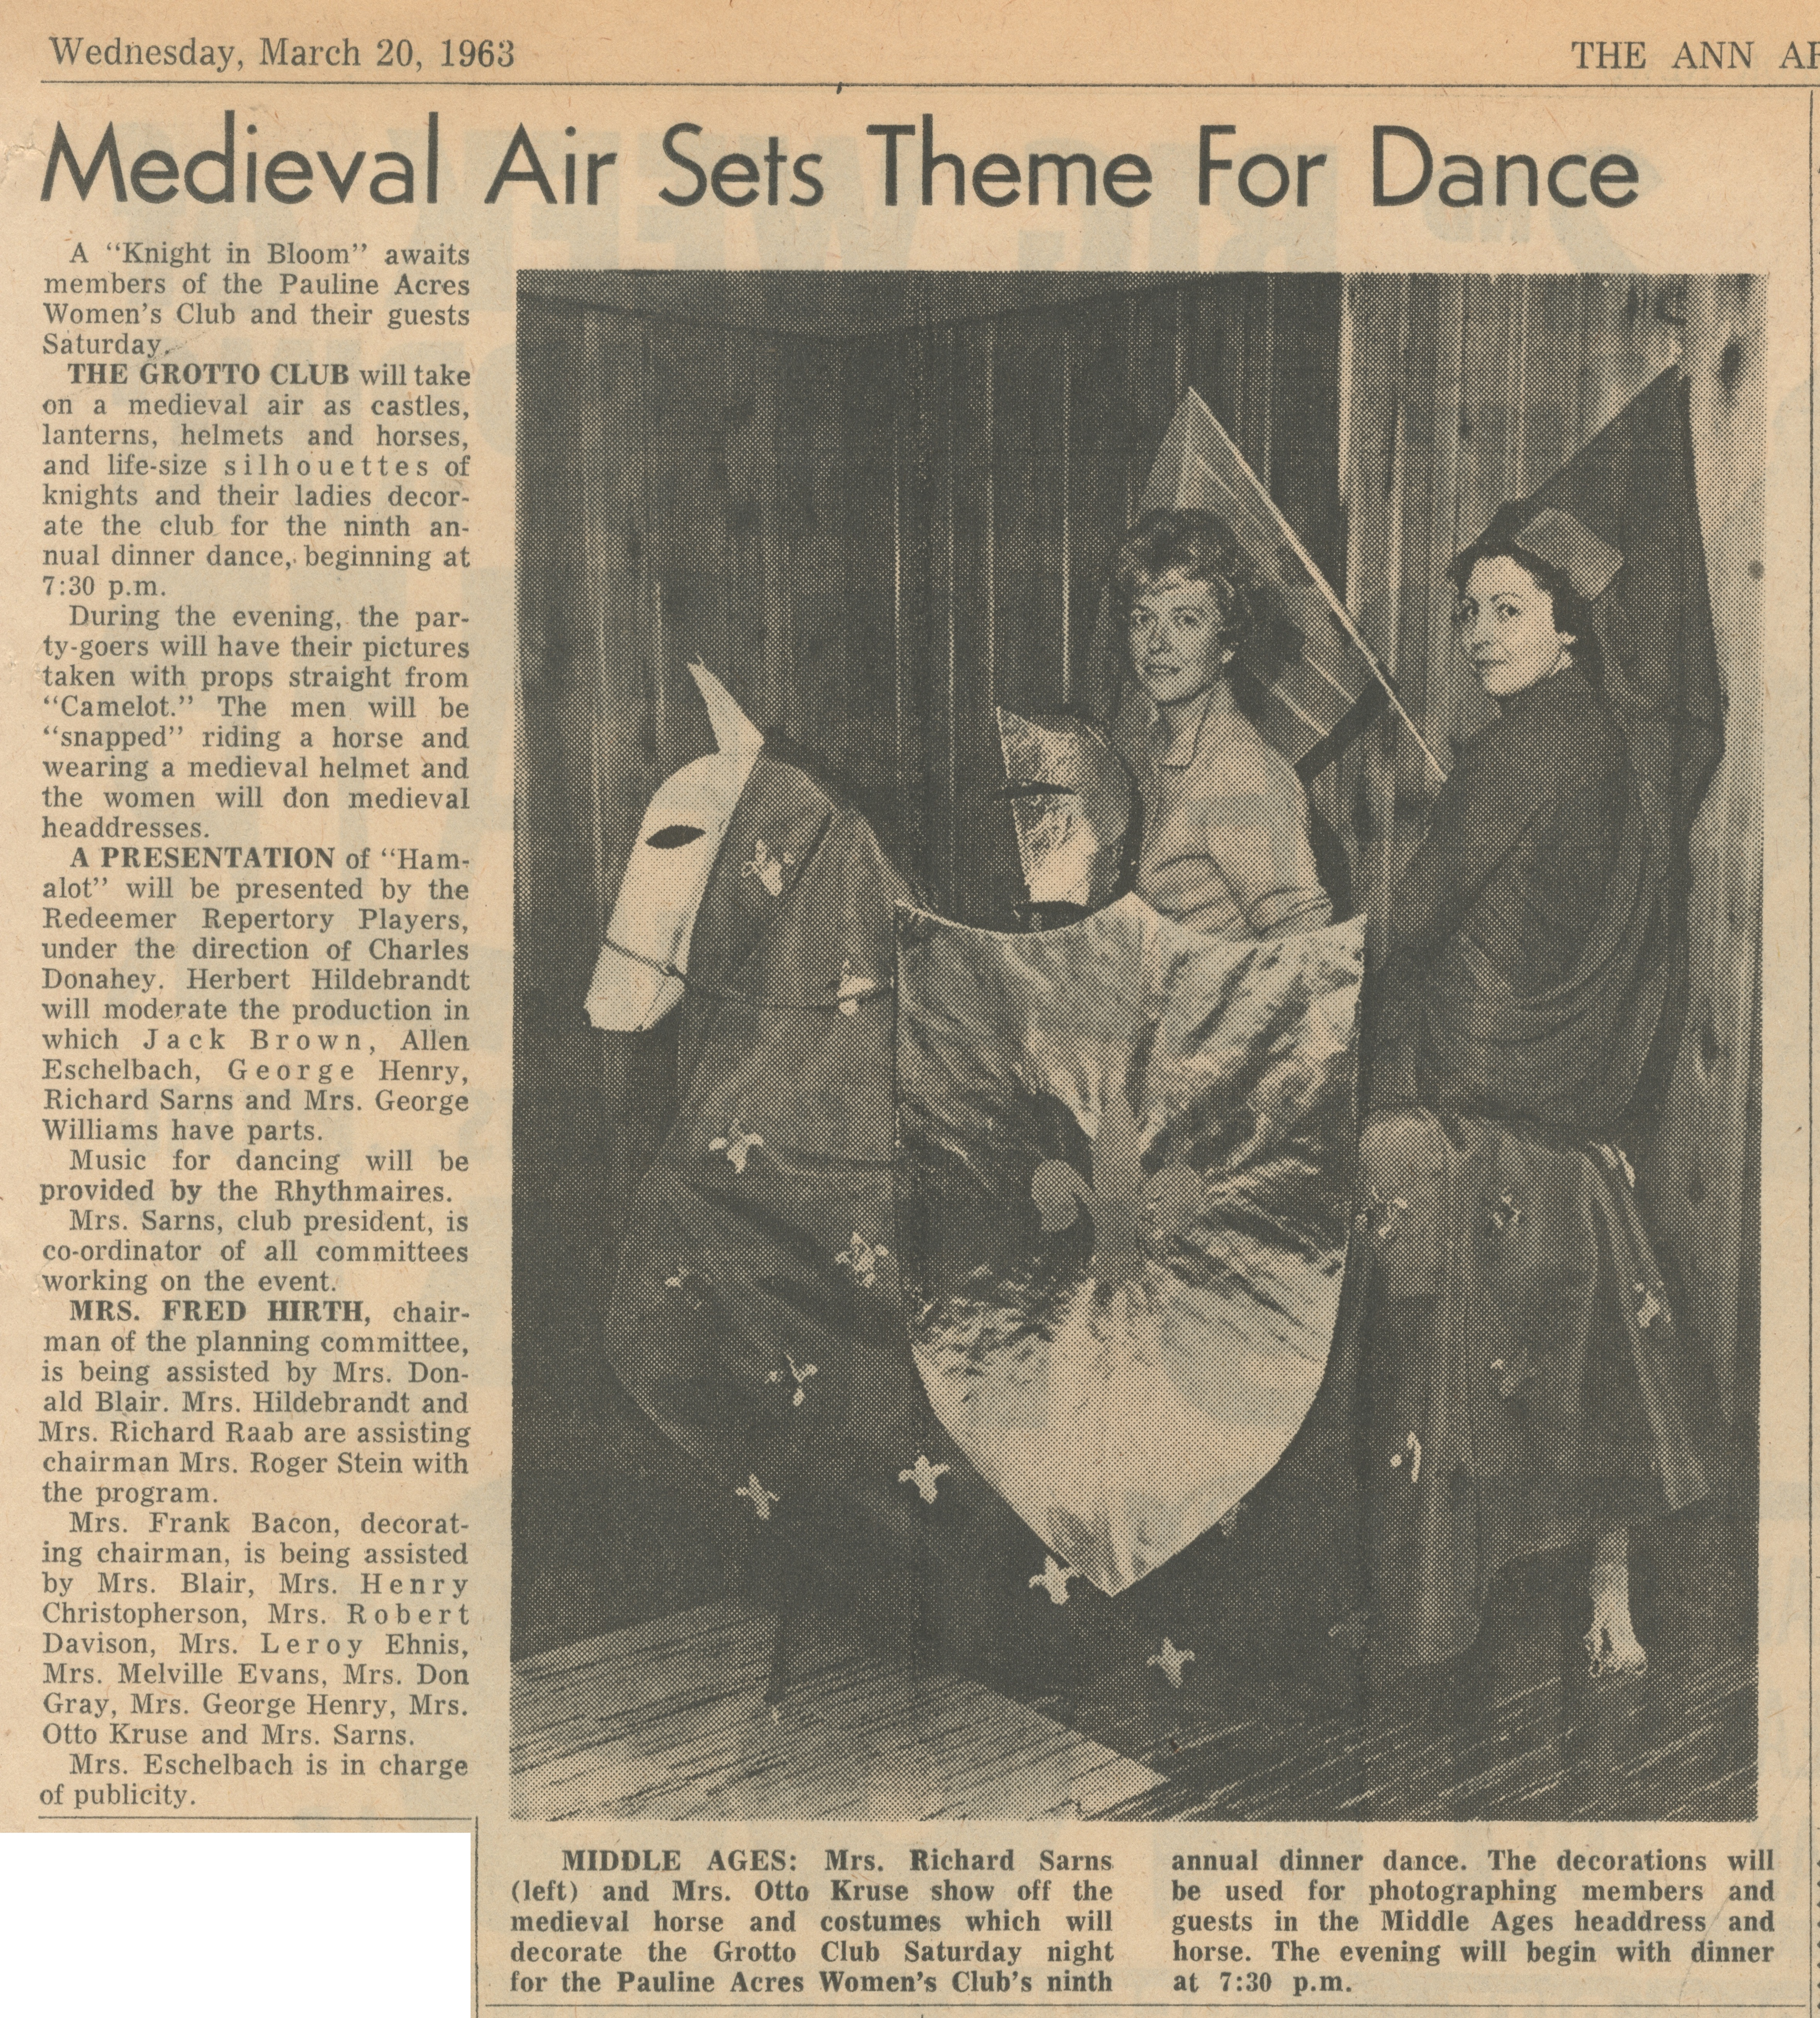 Medieval Air Sets Theme For Dance image